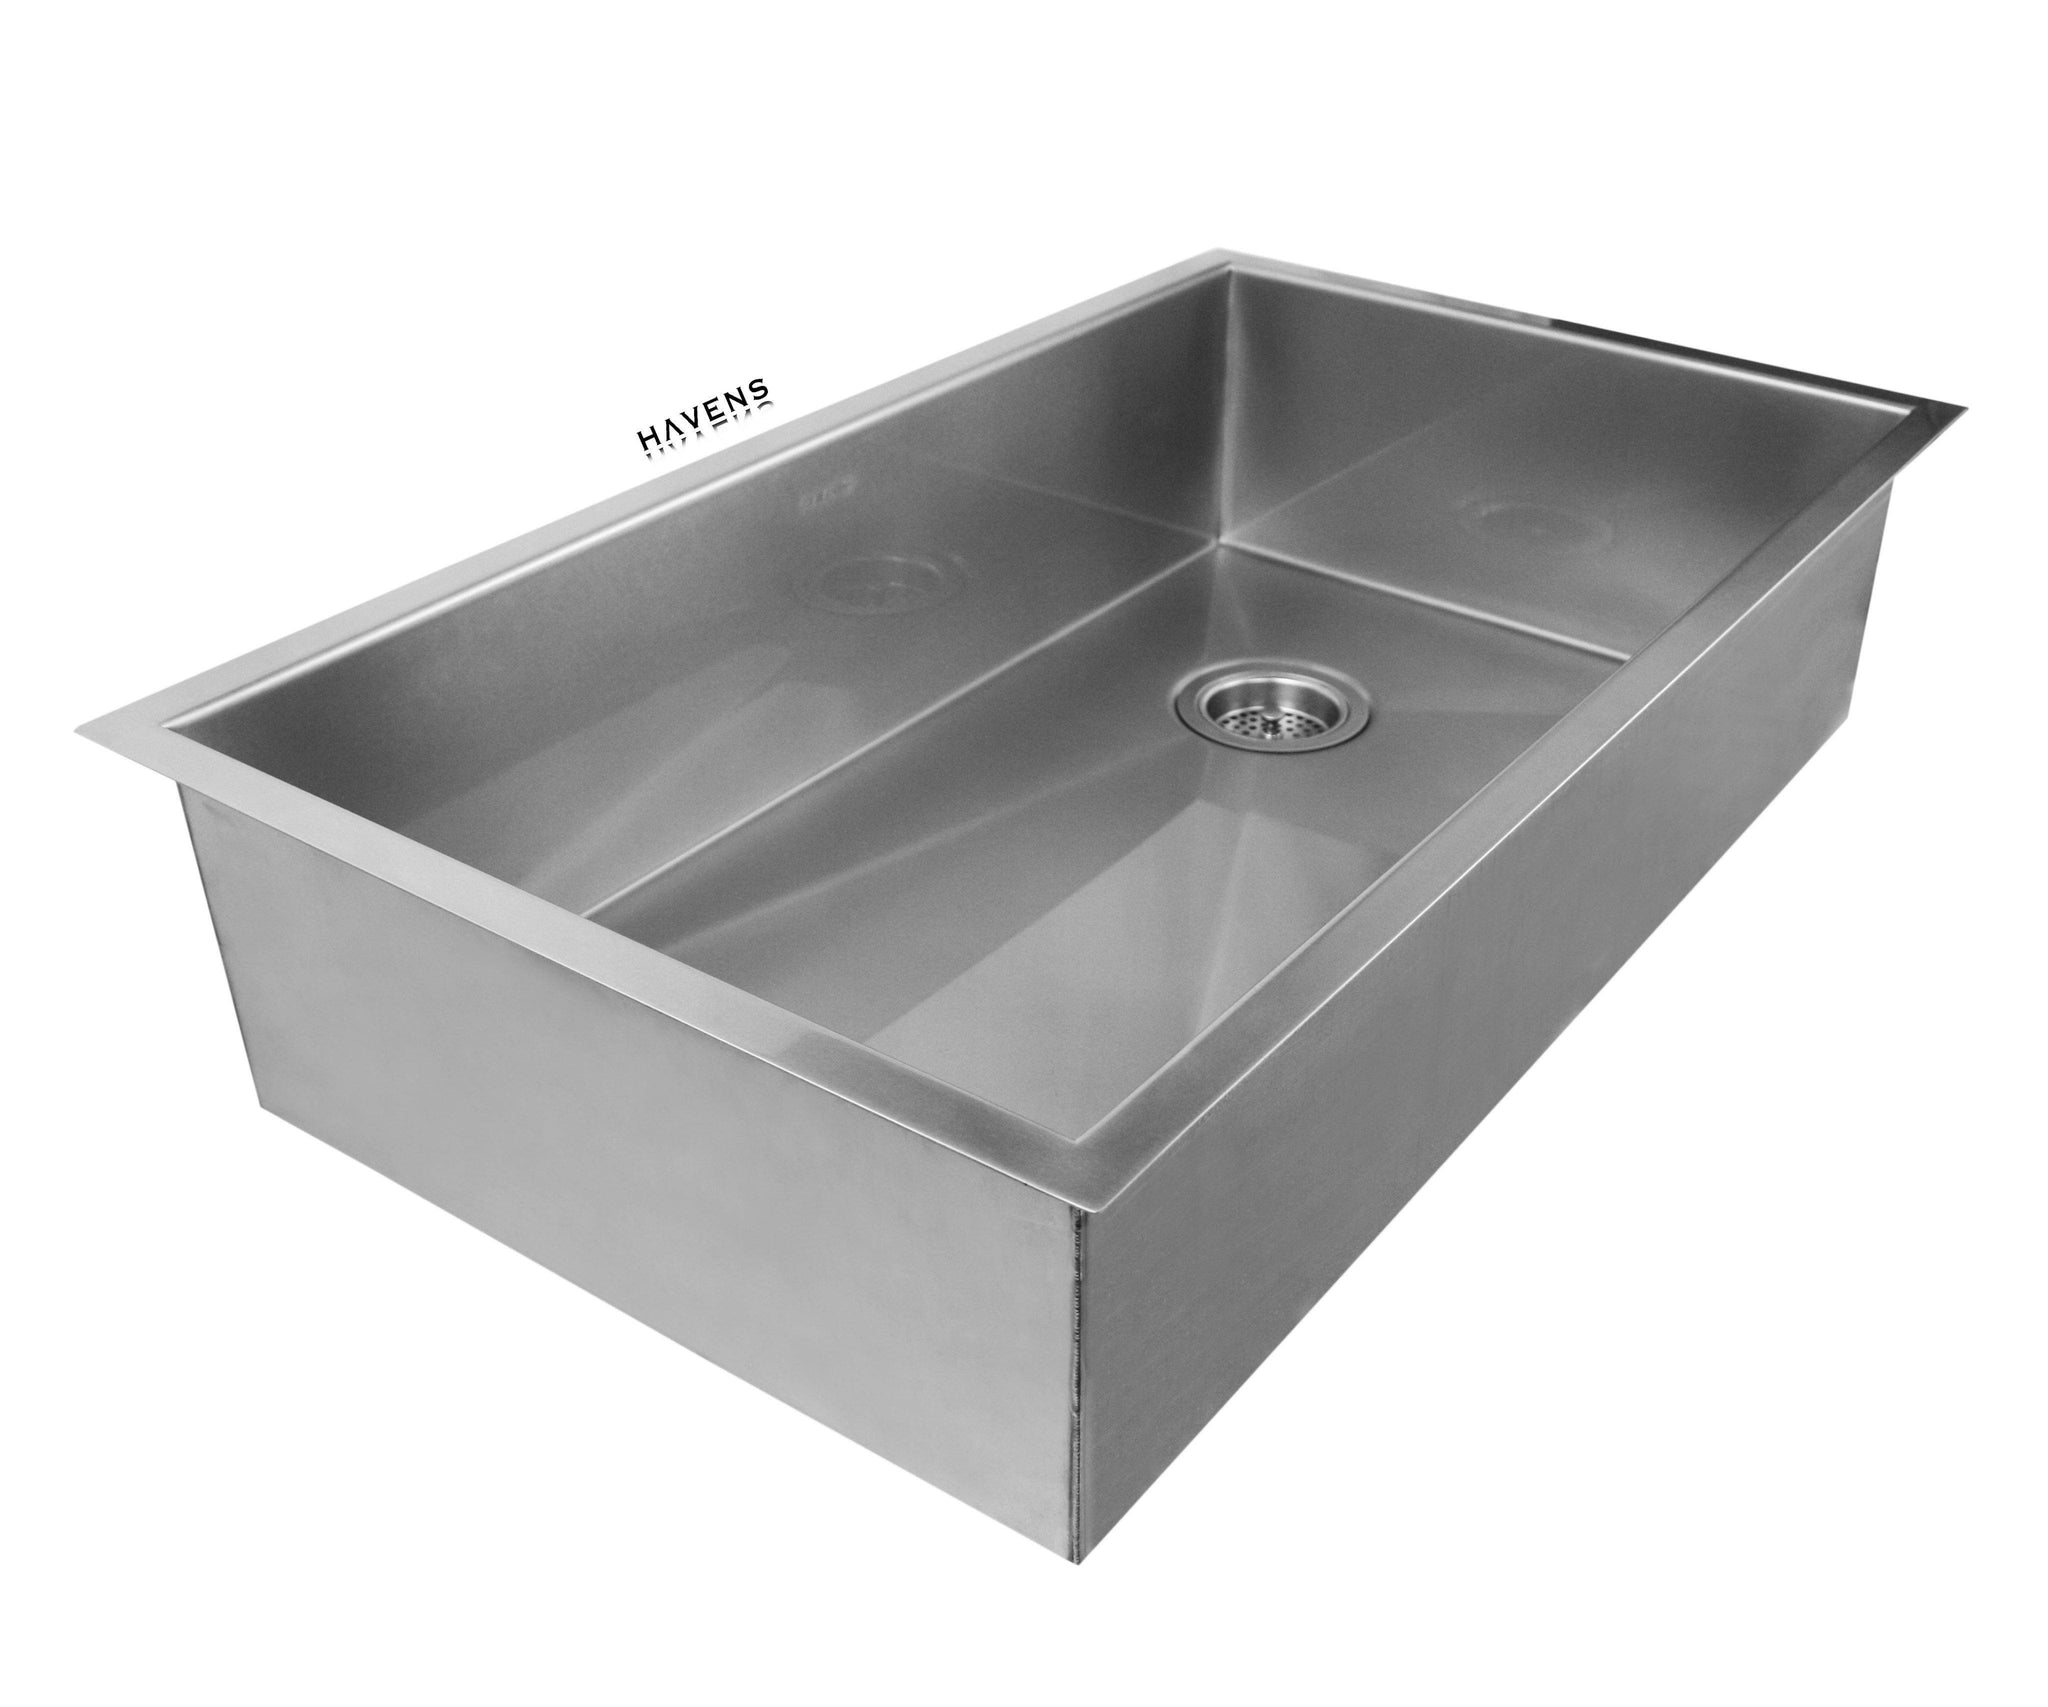 Undermount stainless steel sink made in the USA.